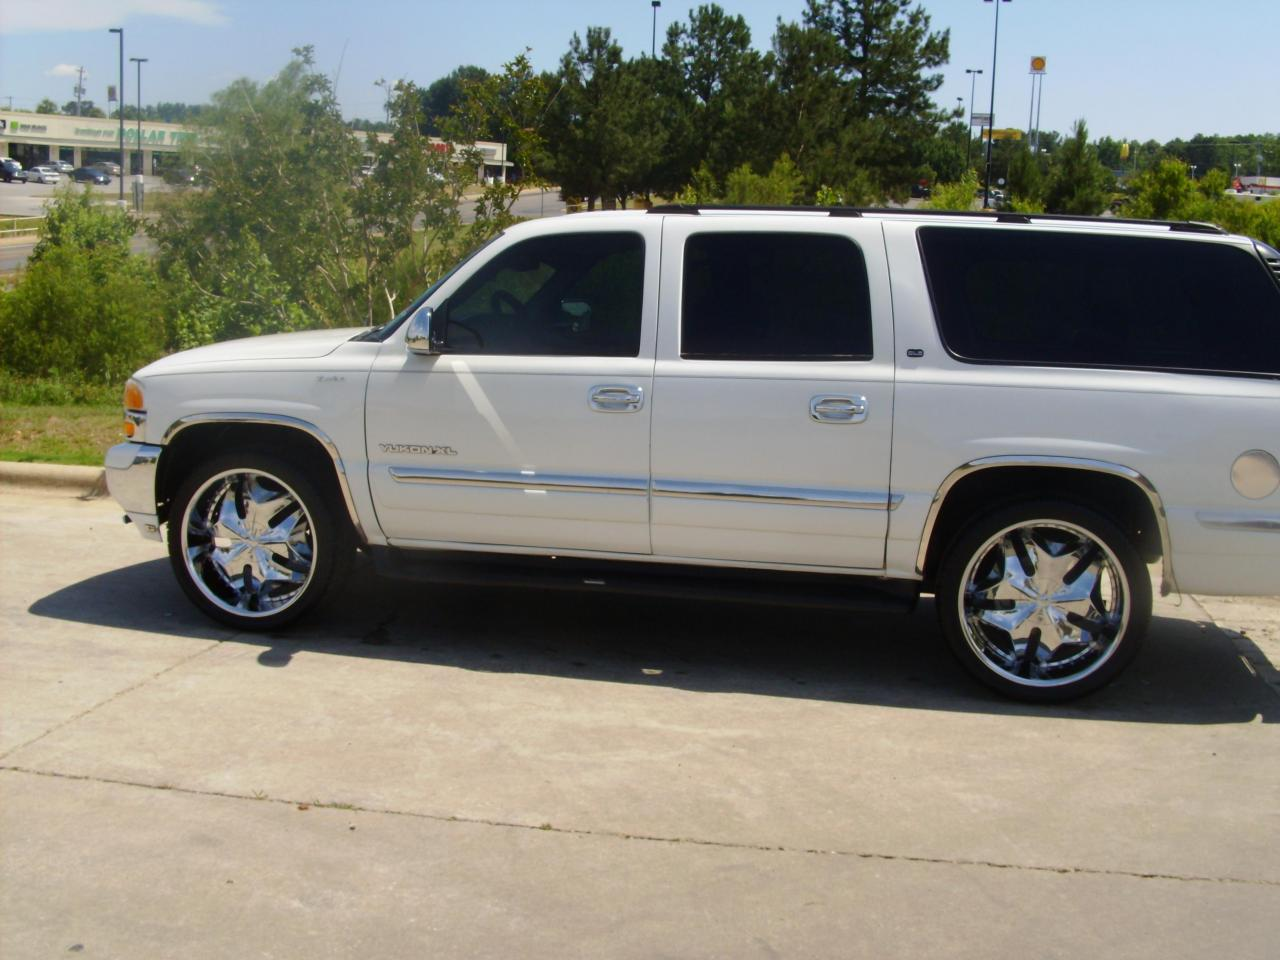 2000 gmc yukon xl information and photos zombiedrive. Black Bedroom Furniture Sets. Home Design Ideas